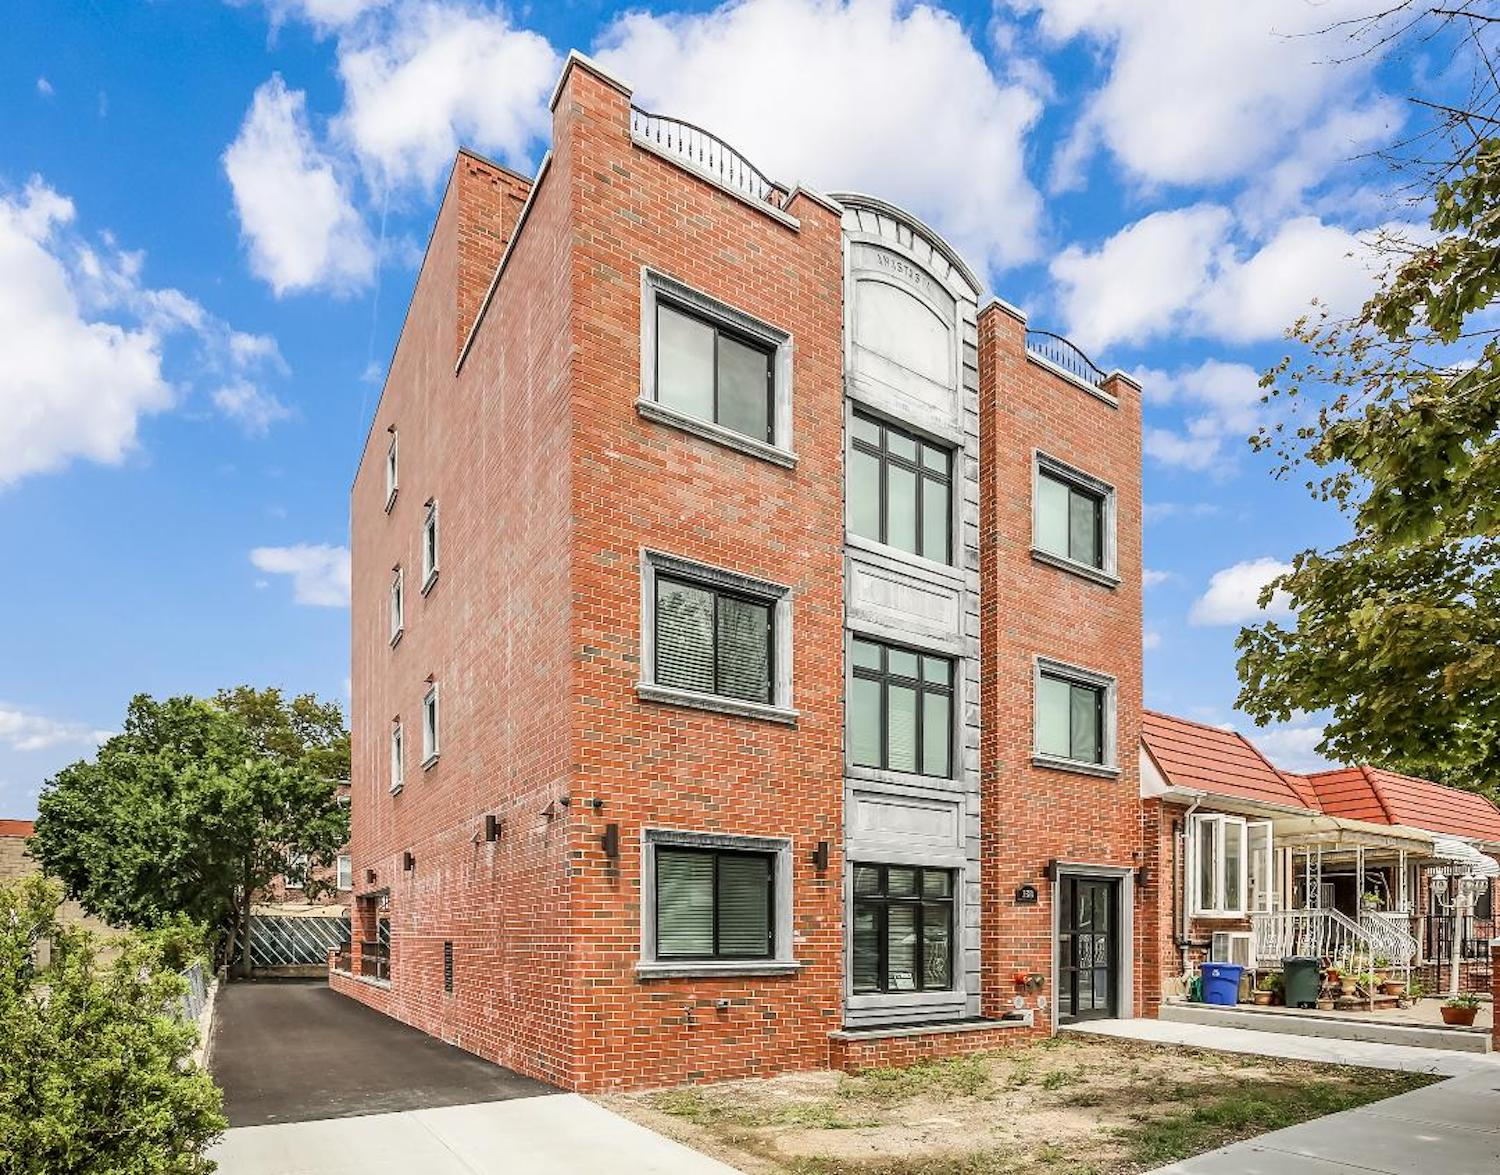 Residences at 25-88 49th Street in Astoria, Queens. All images courtesy of NYC Housing Connect